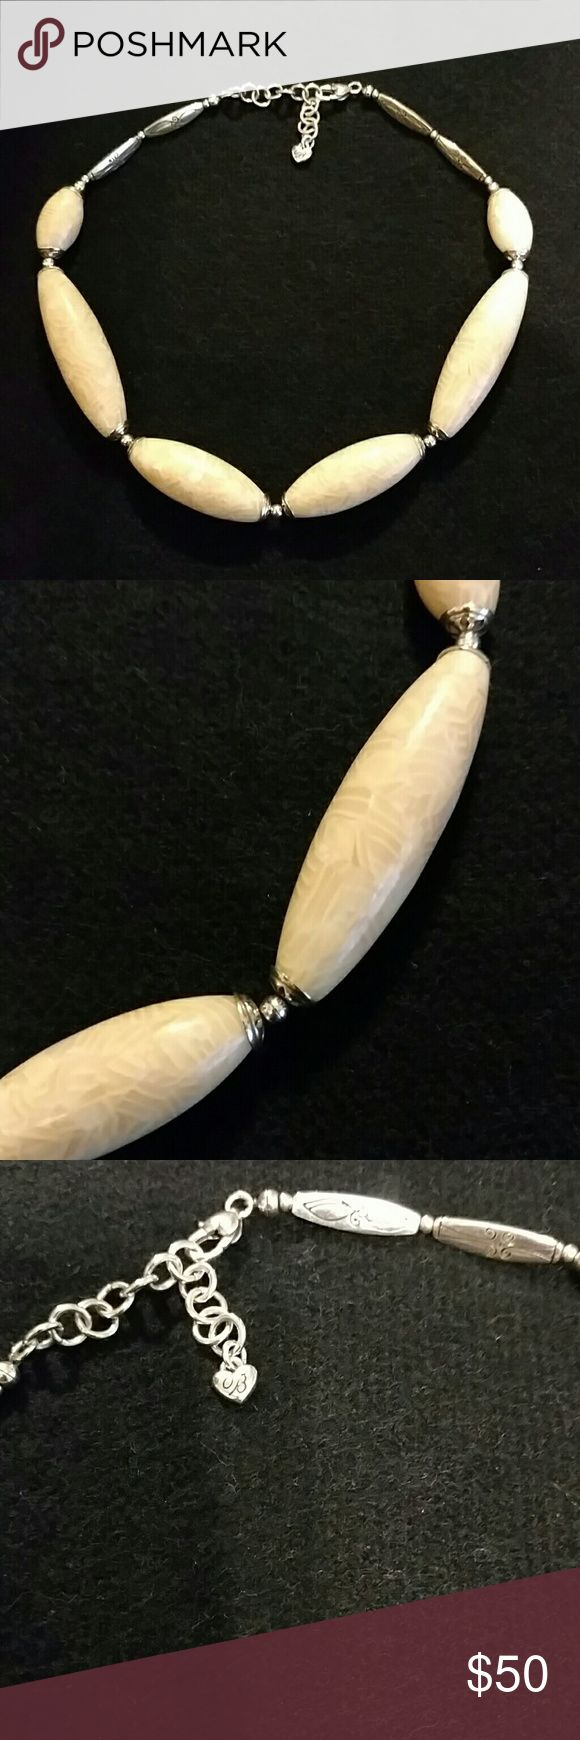 """Brighton Necklace Cream and beautifully scrolled design. Unique Brighton piece. 16"""" long with an additional 2.5"""" extender. No tarnishing. EUC comes with Brighton pouch. Brighton Jewelry Necklaces"""